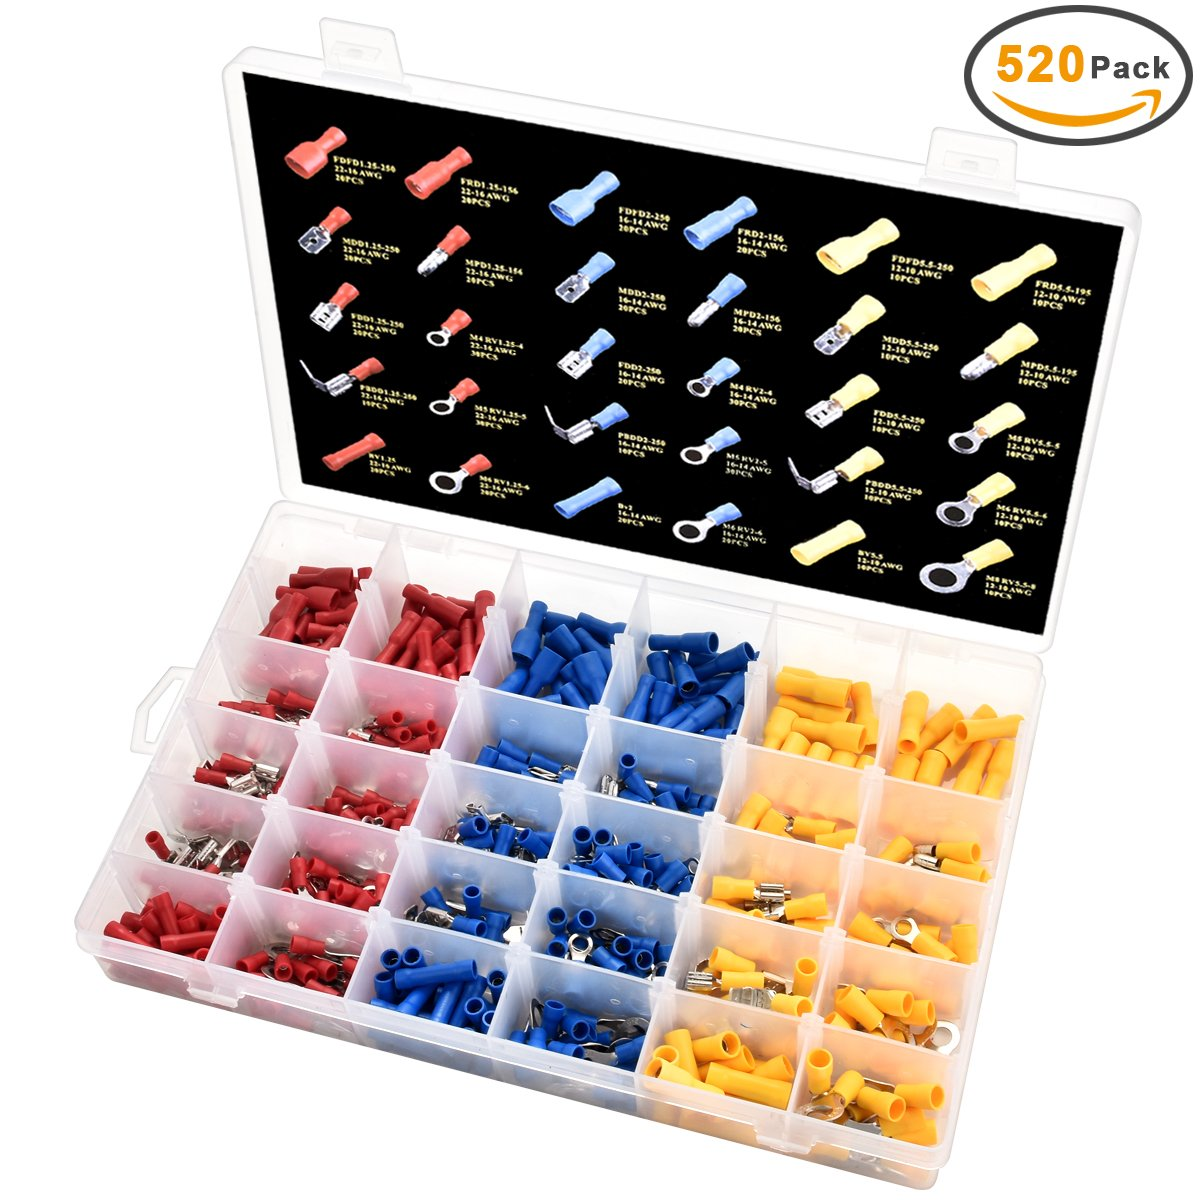 520Pcs Insulated Wiring Crimp Terminals - SanGlory Wire Terminals Ends Electrical Wire Connectors Crimp Terminals Kits Automotive Terminals Set Fork Ring Butt Spade Case Set